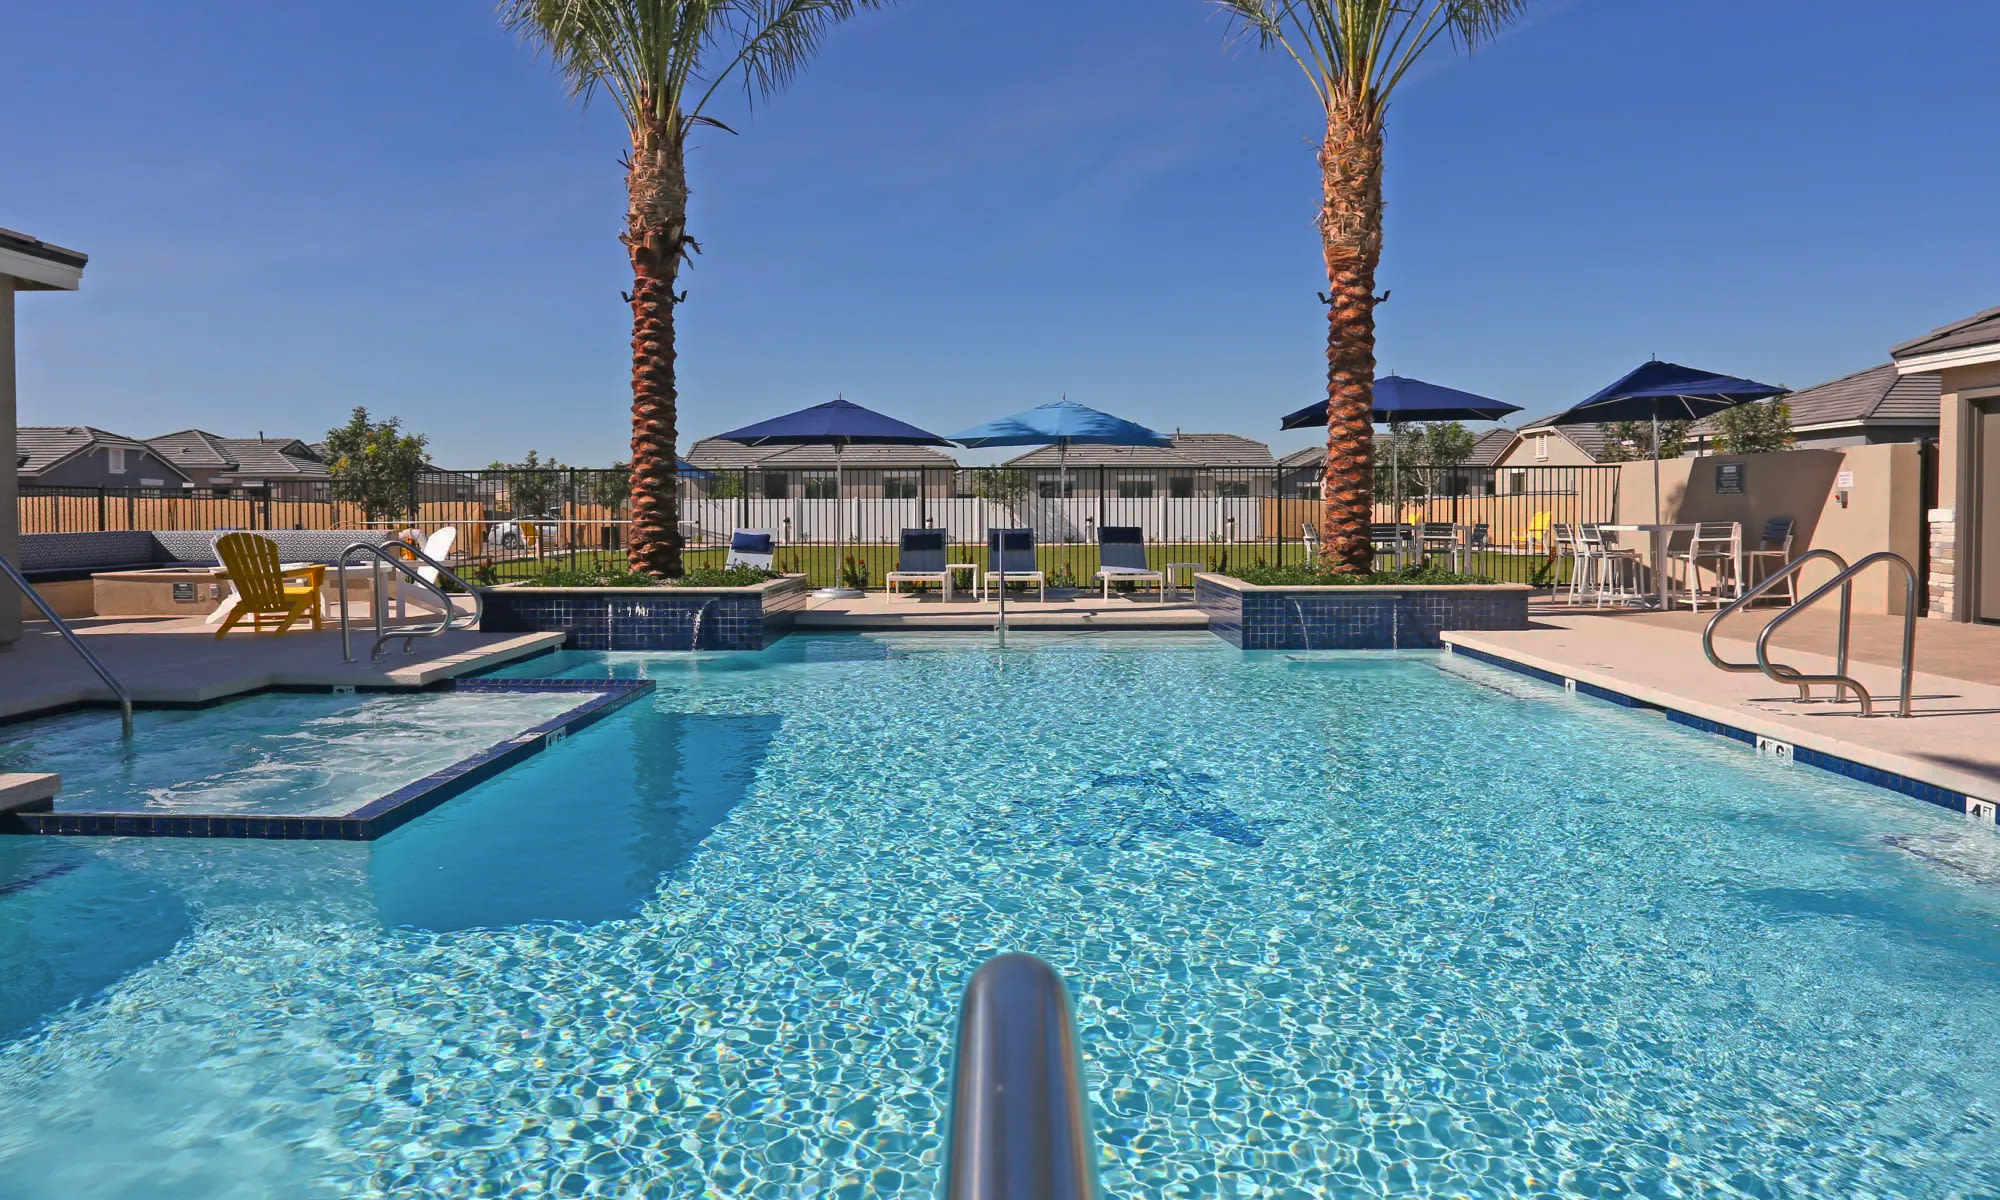 Apartments at Christopher Todd Communities at Country Place in Tolleson, Arizona